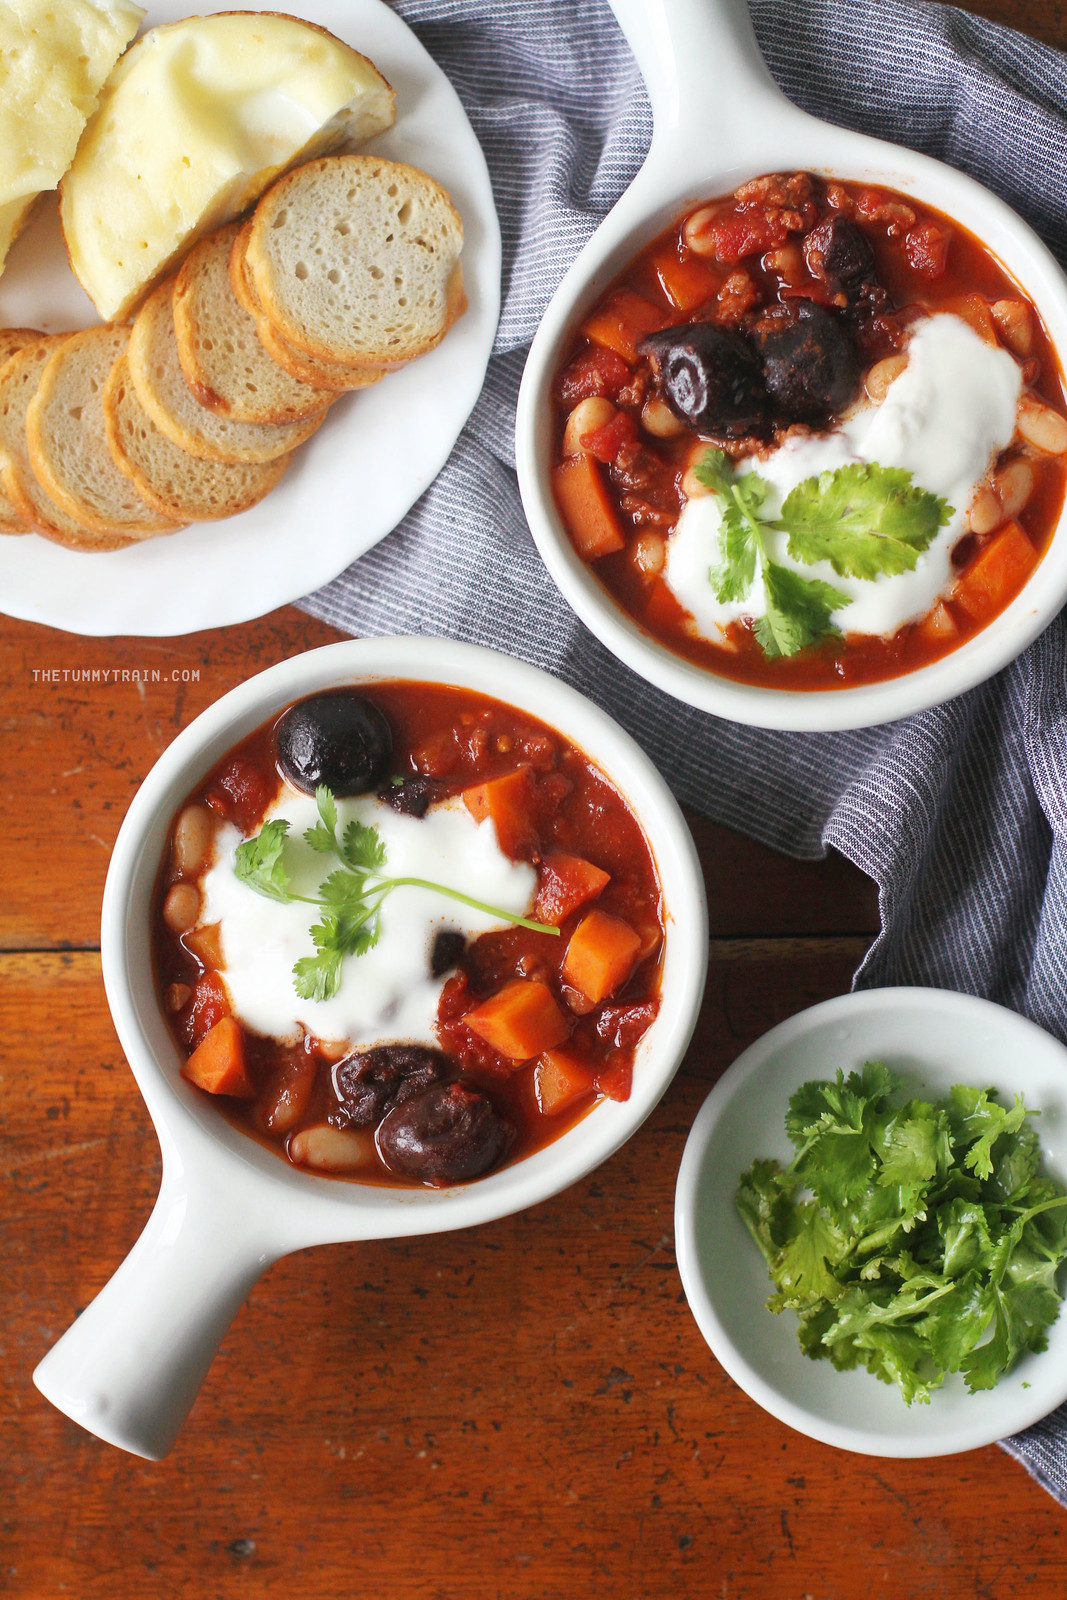 35370499480 624a4ba64c h - This Cherry Chipotle Chili Recipe was a fitting first try